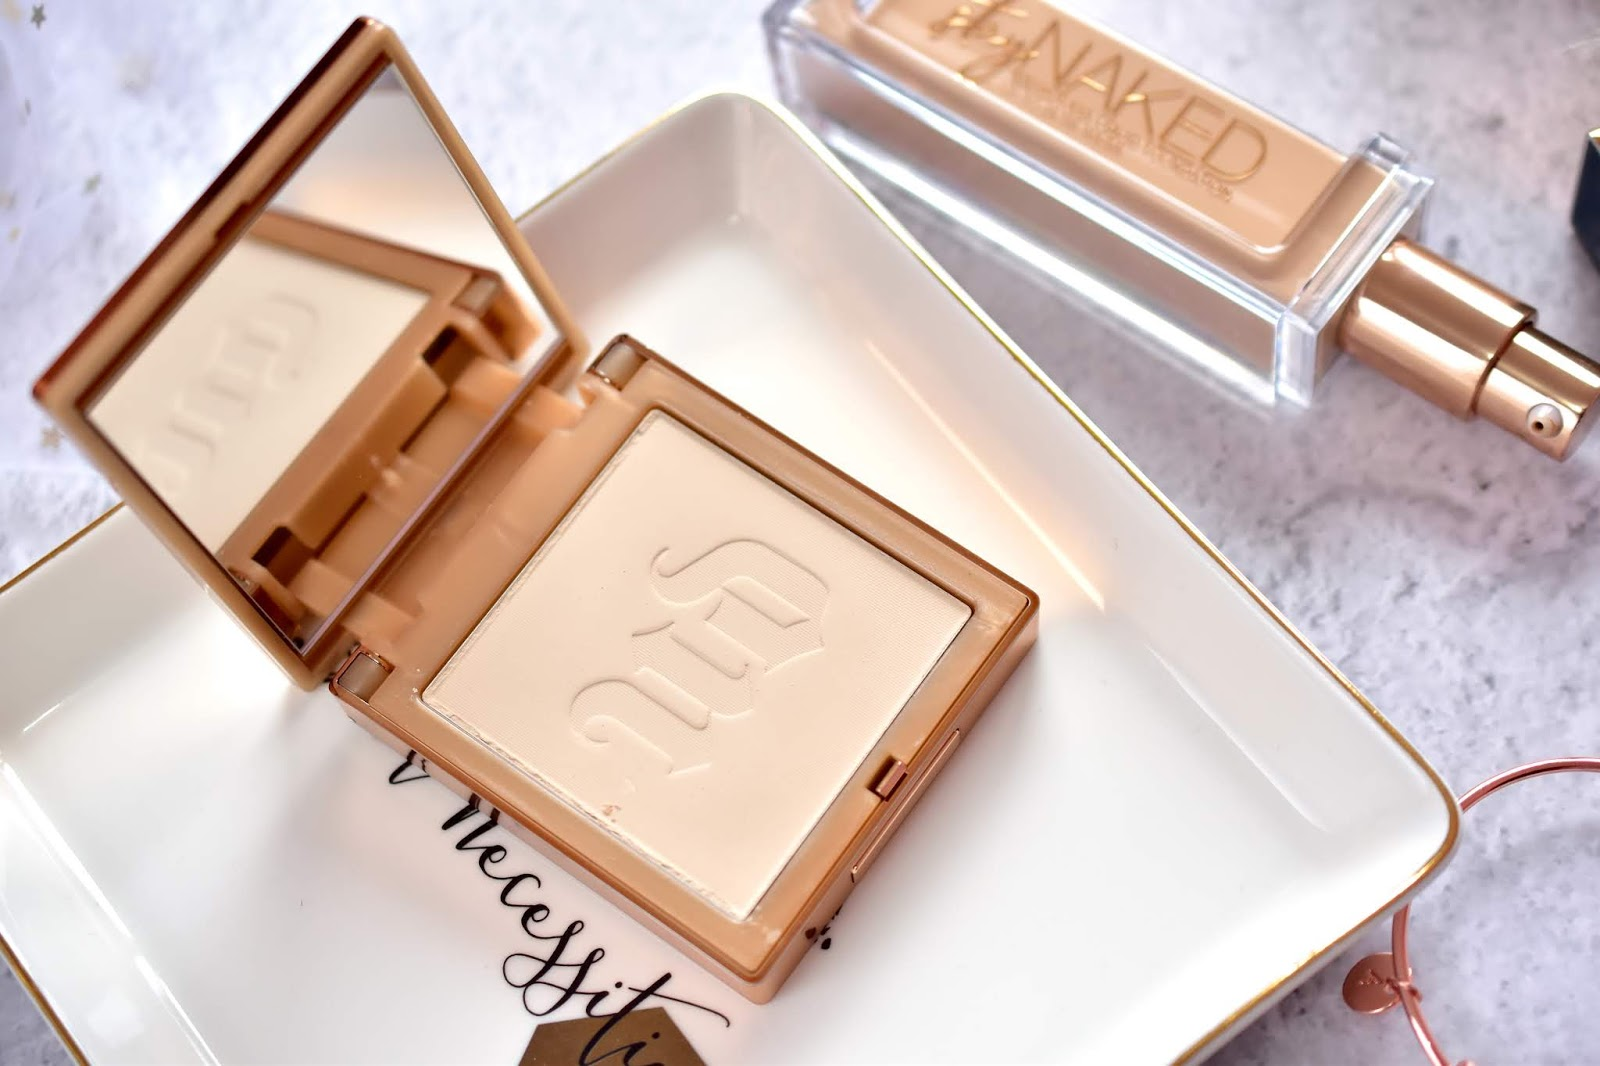 Urban Decay Stay Naked The Fix